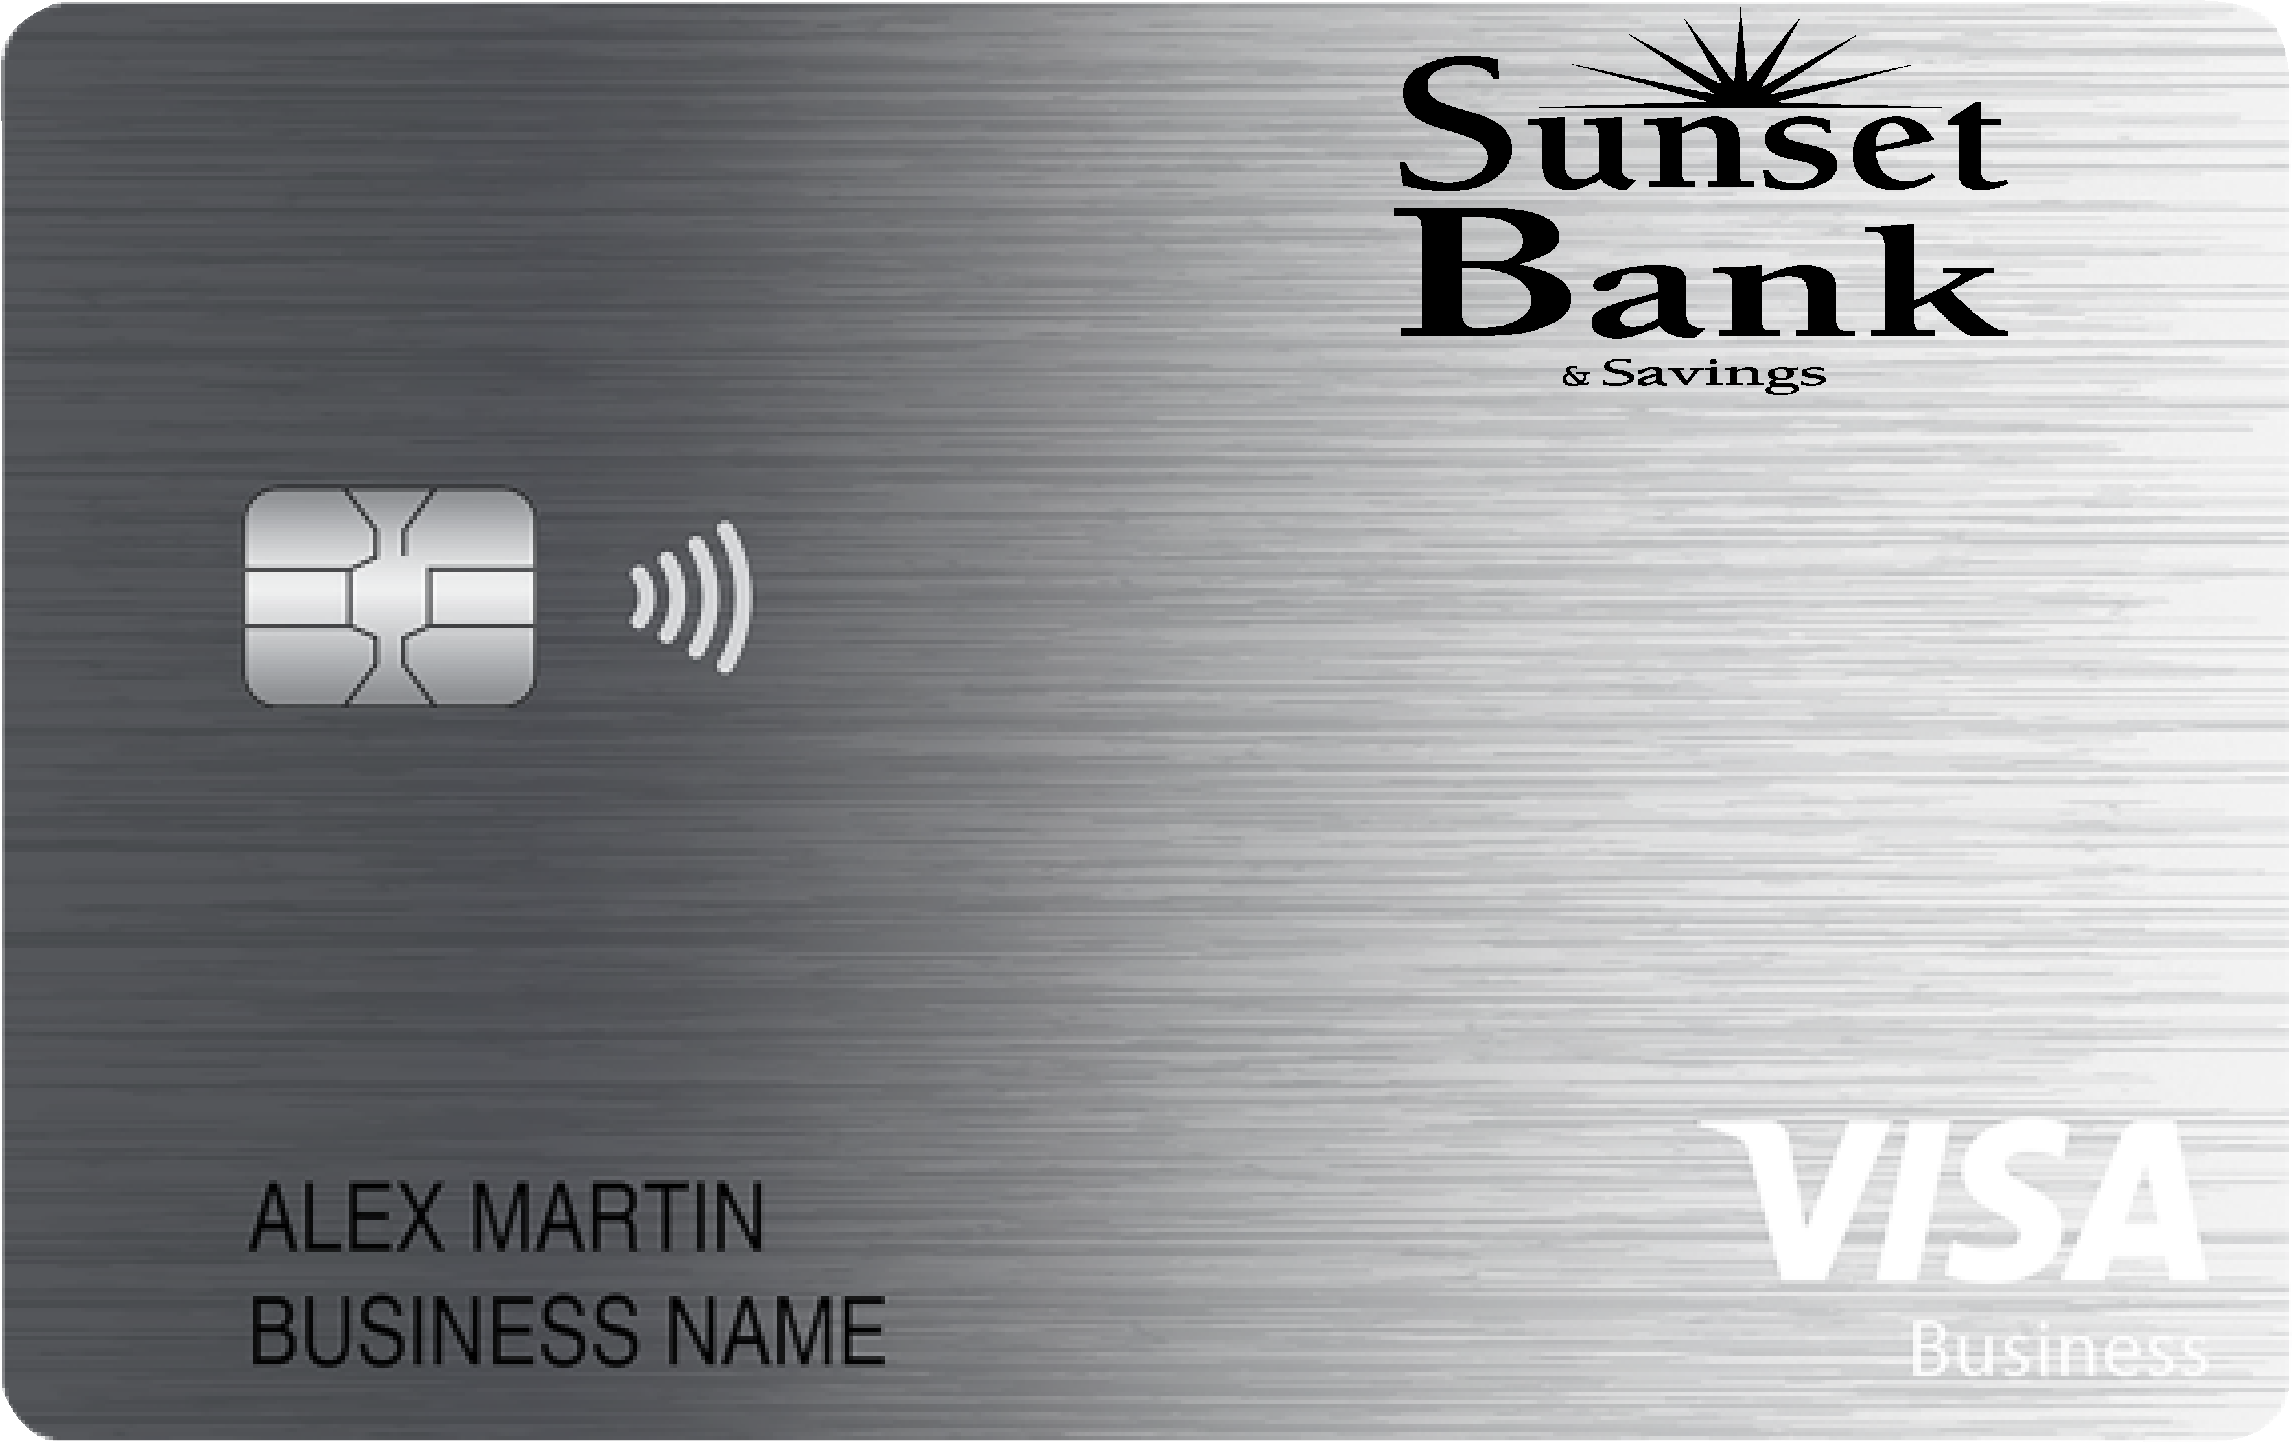 Sunset Bank & Savings